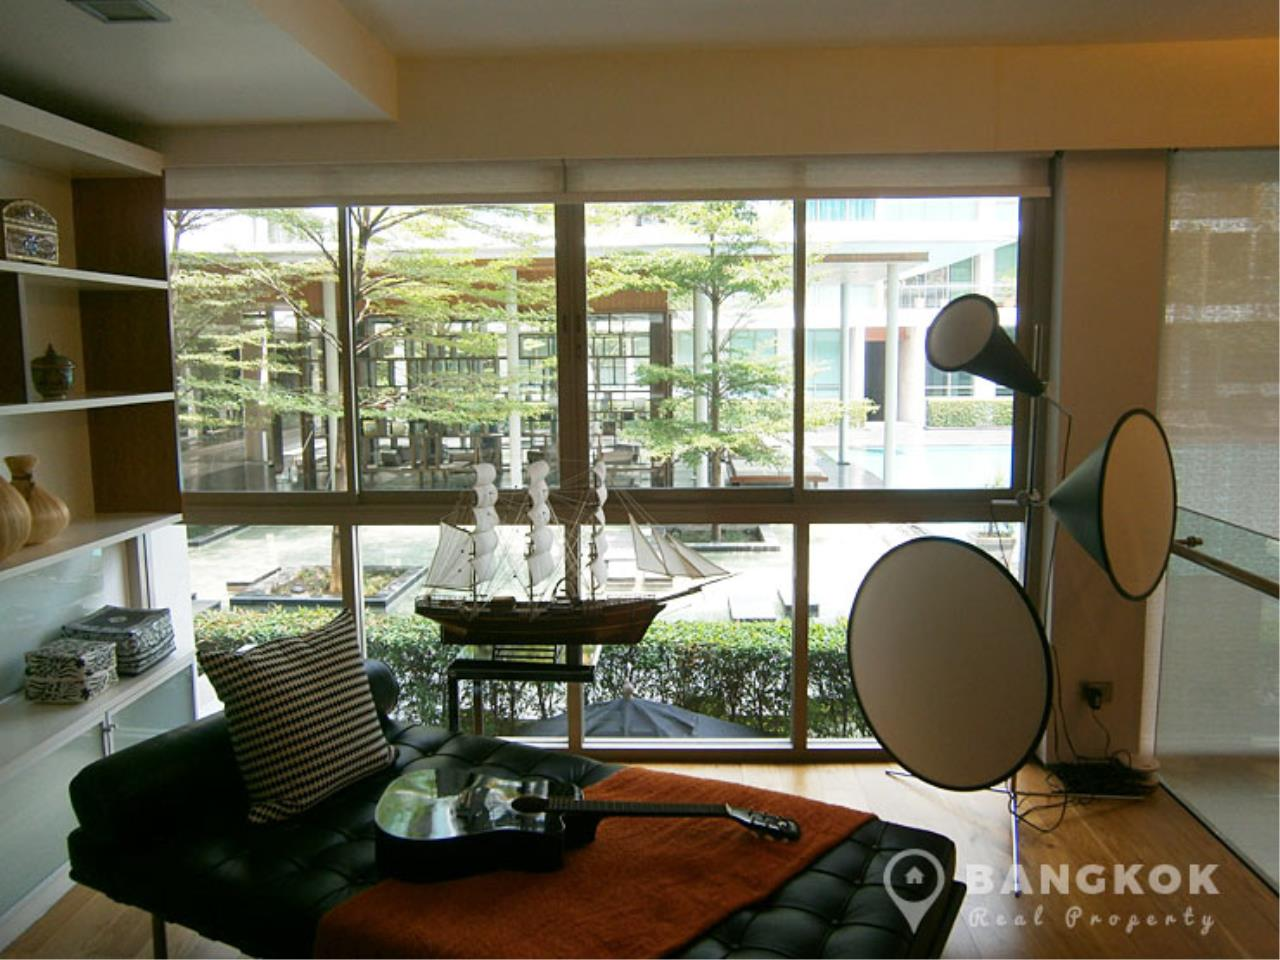 Bangkok Real Property Agency's Ficus Lane | A Fabulous Spacious 3 Bed 4 Bath Duplex near BTS 16